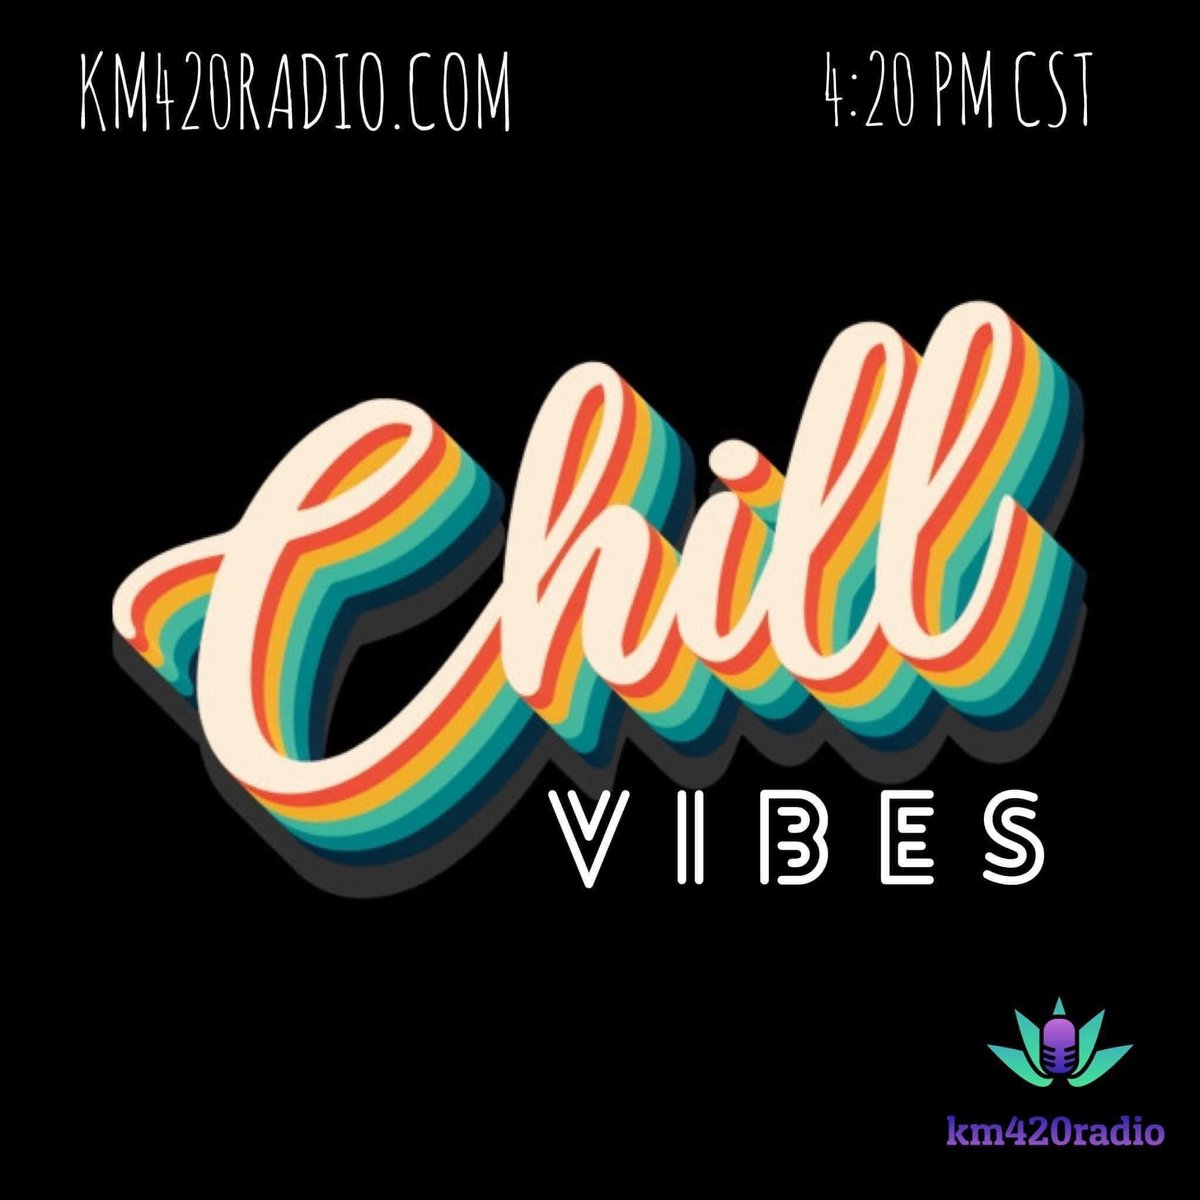 "Today at 4:20 @fara_hunter ""420""   Then... smoking chill songs! 🔥🔥🔥 By Ganja_Grrl420 🔥🎶🤗💃🏻💕  Live on air 24/7 spinning locals, legends and smoking songs 💚💚 #FridayVibes #vibing #dance #mmemberville #onelove"